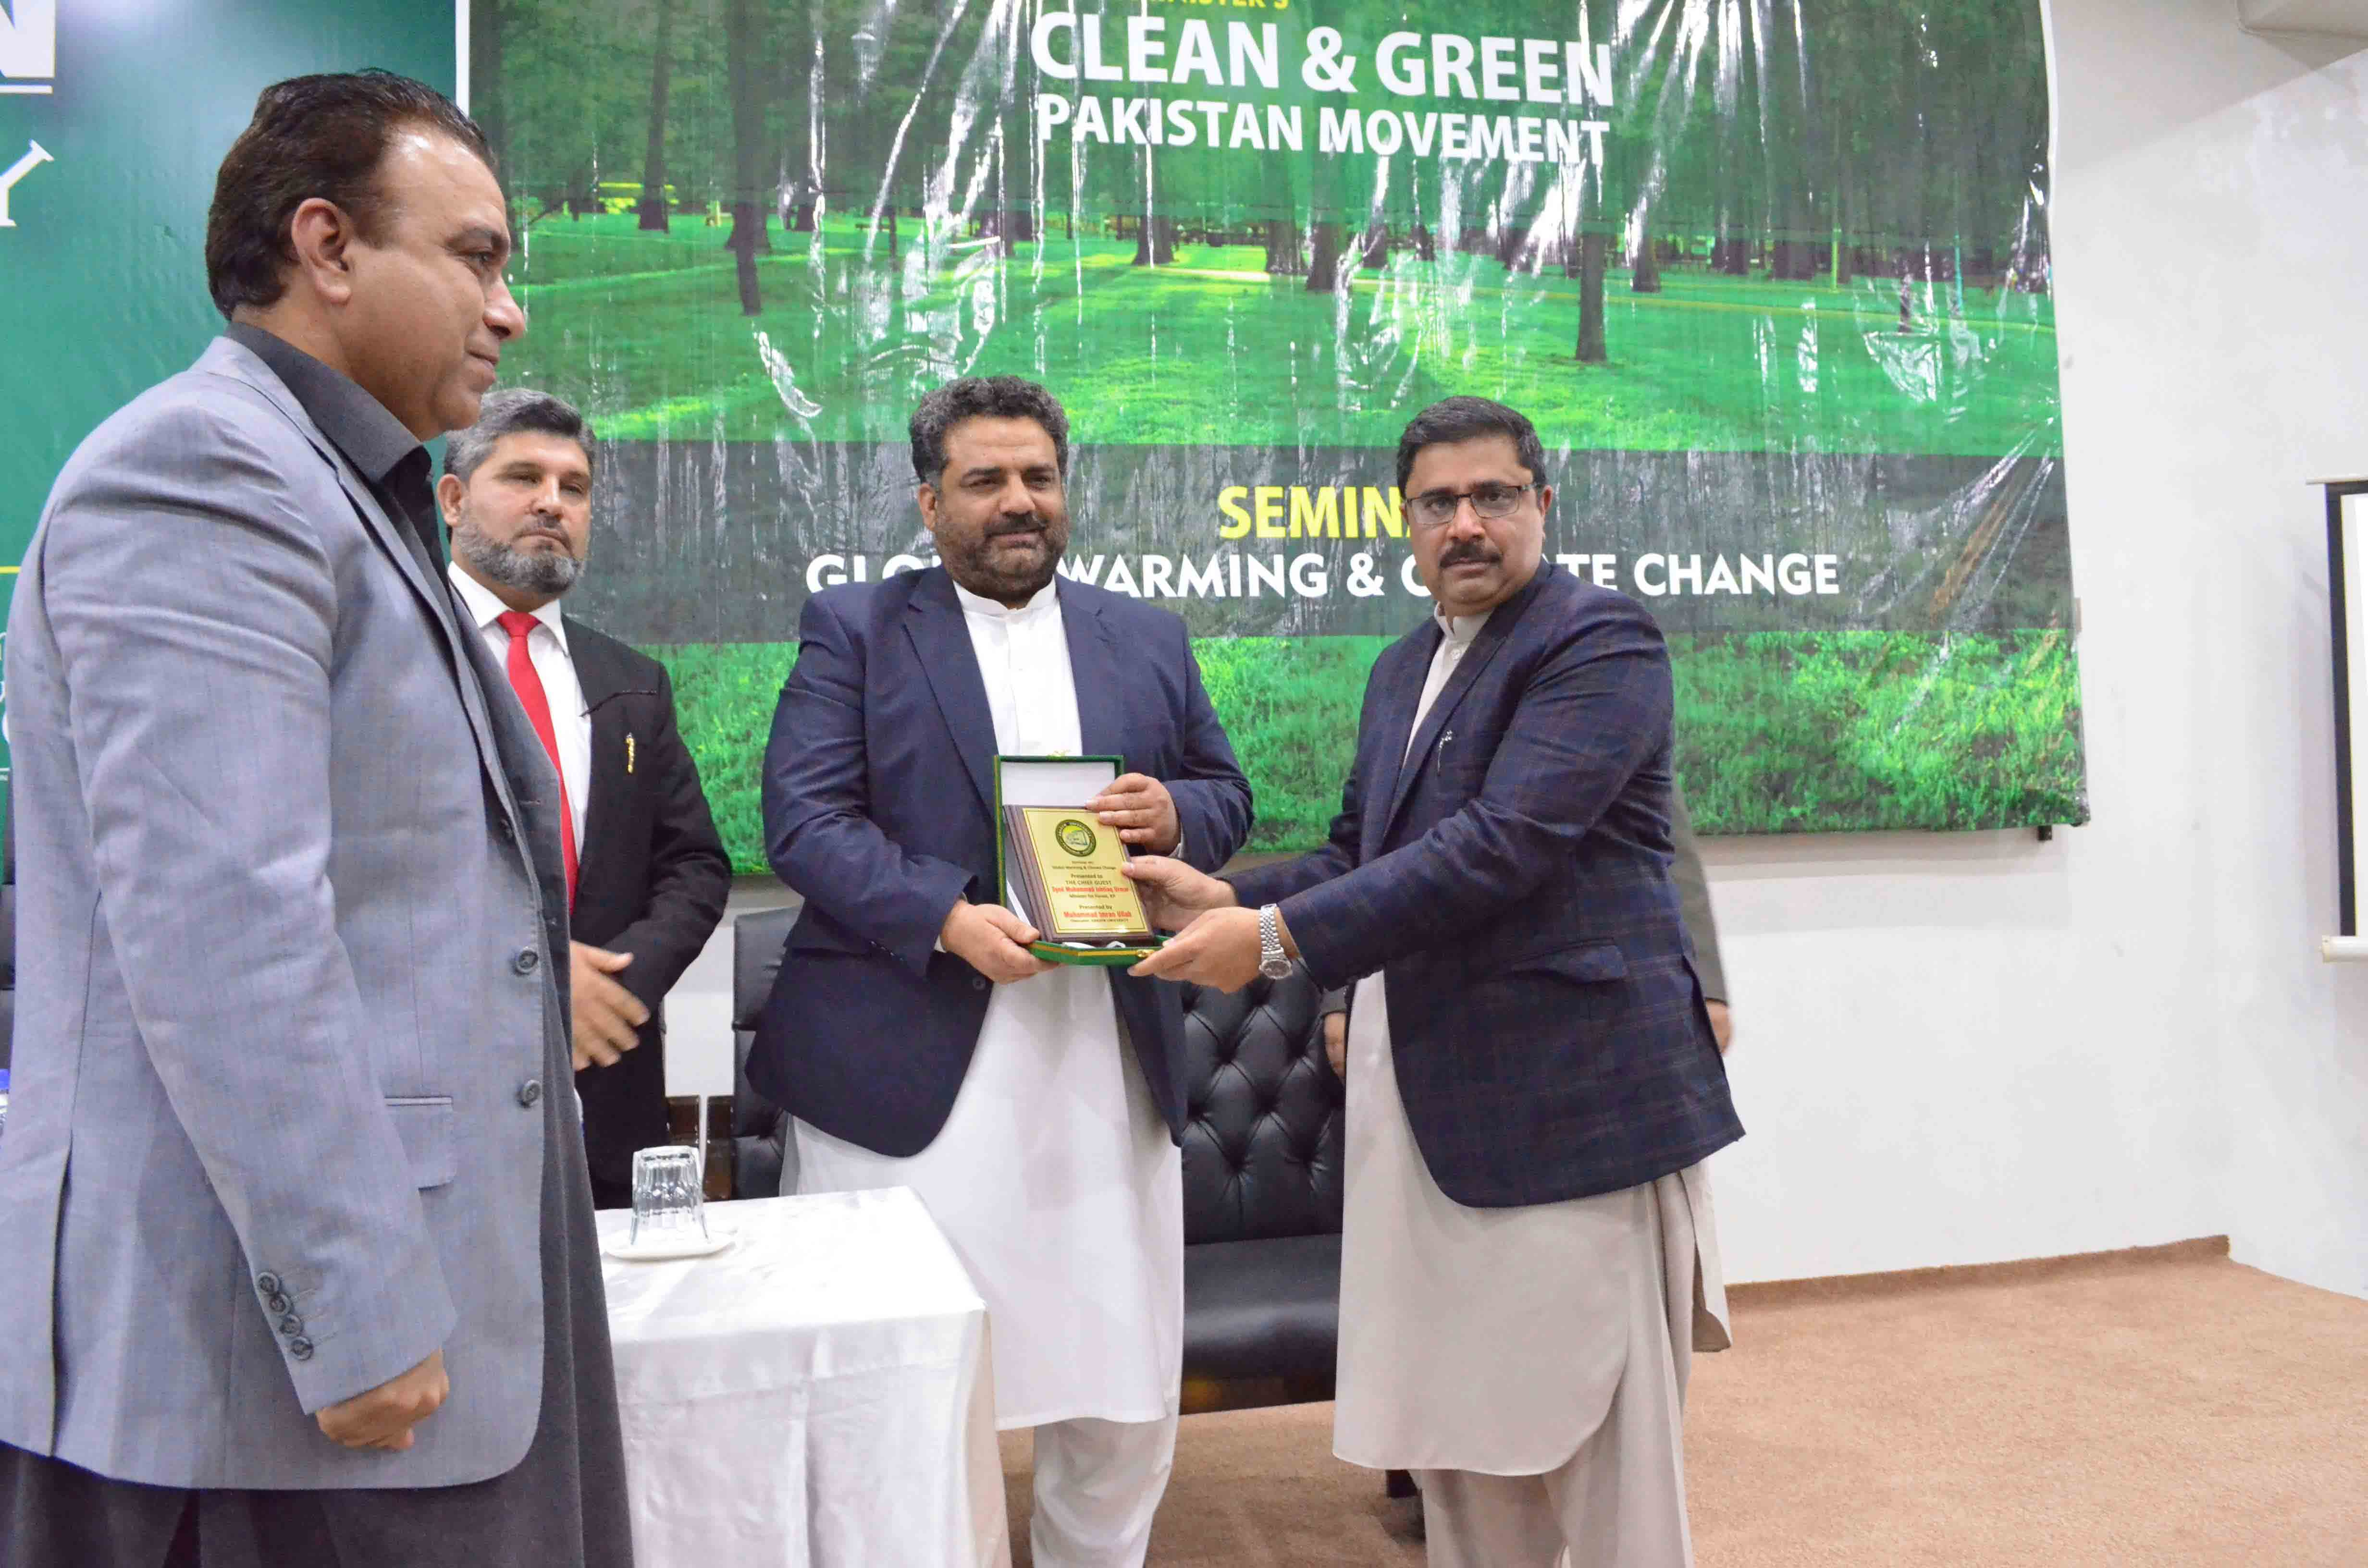 Green Pakistan Movement 2018